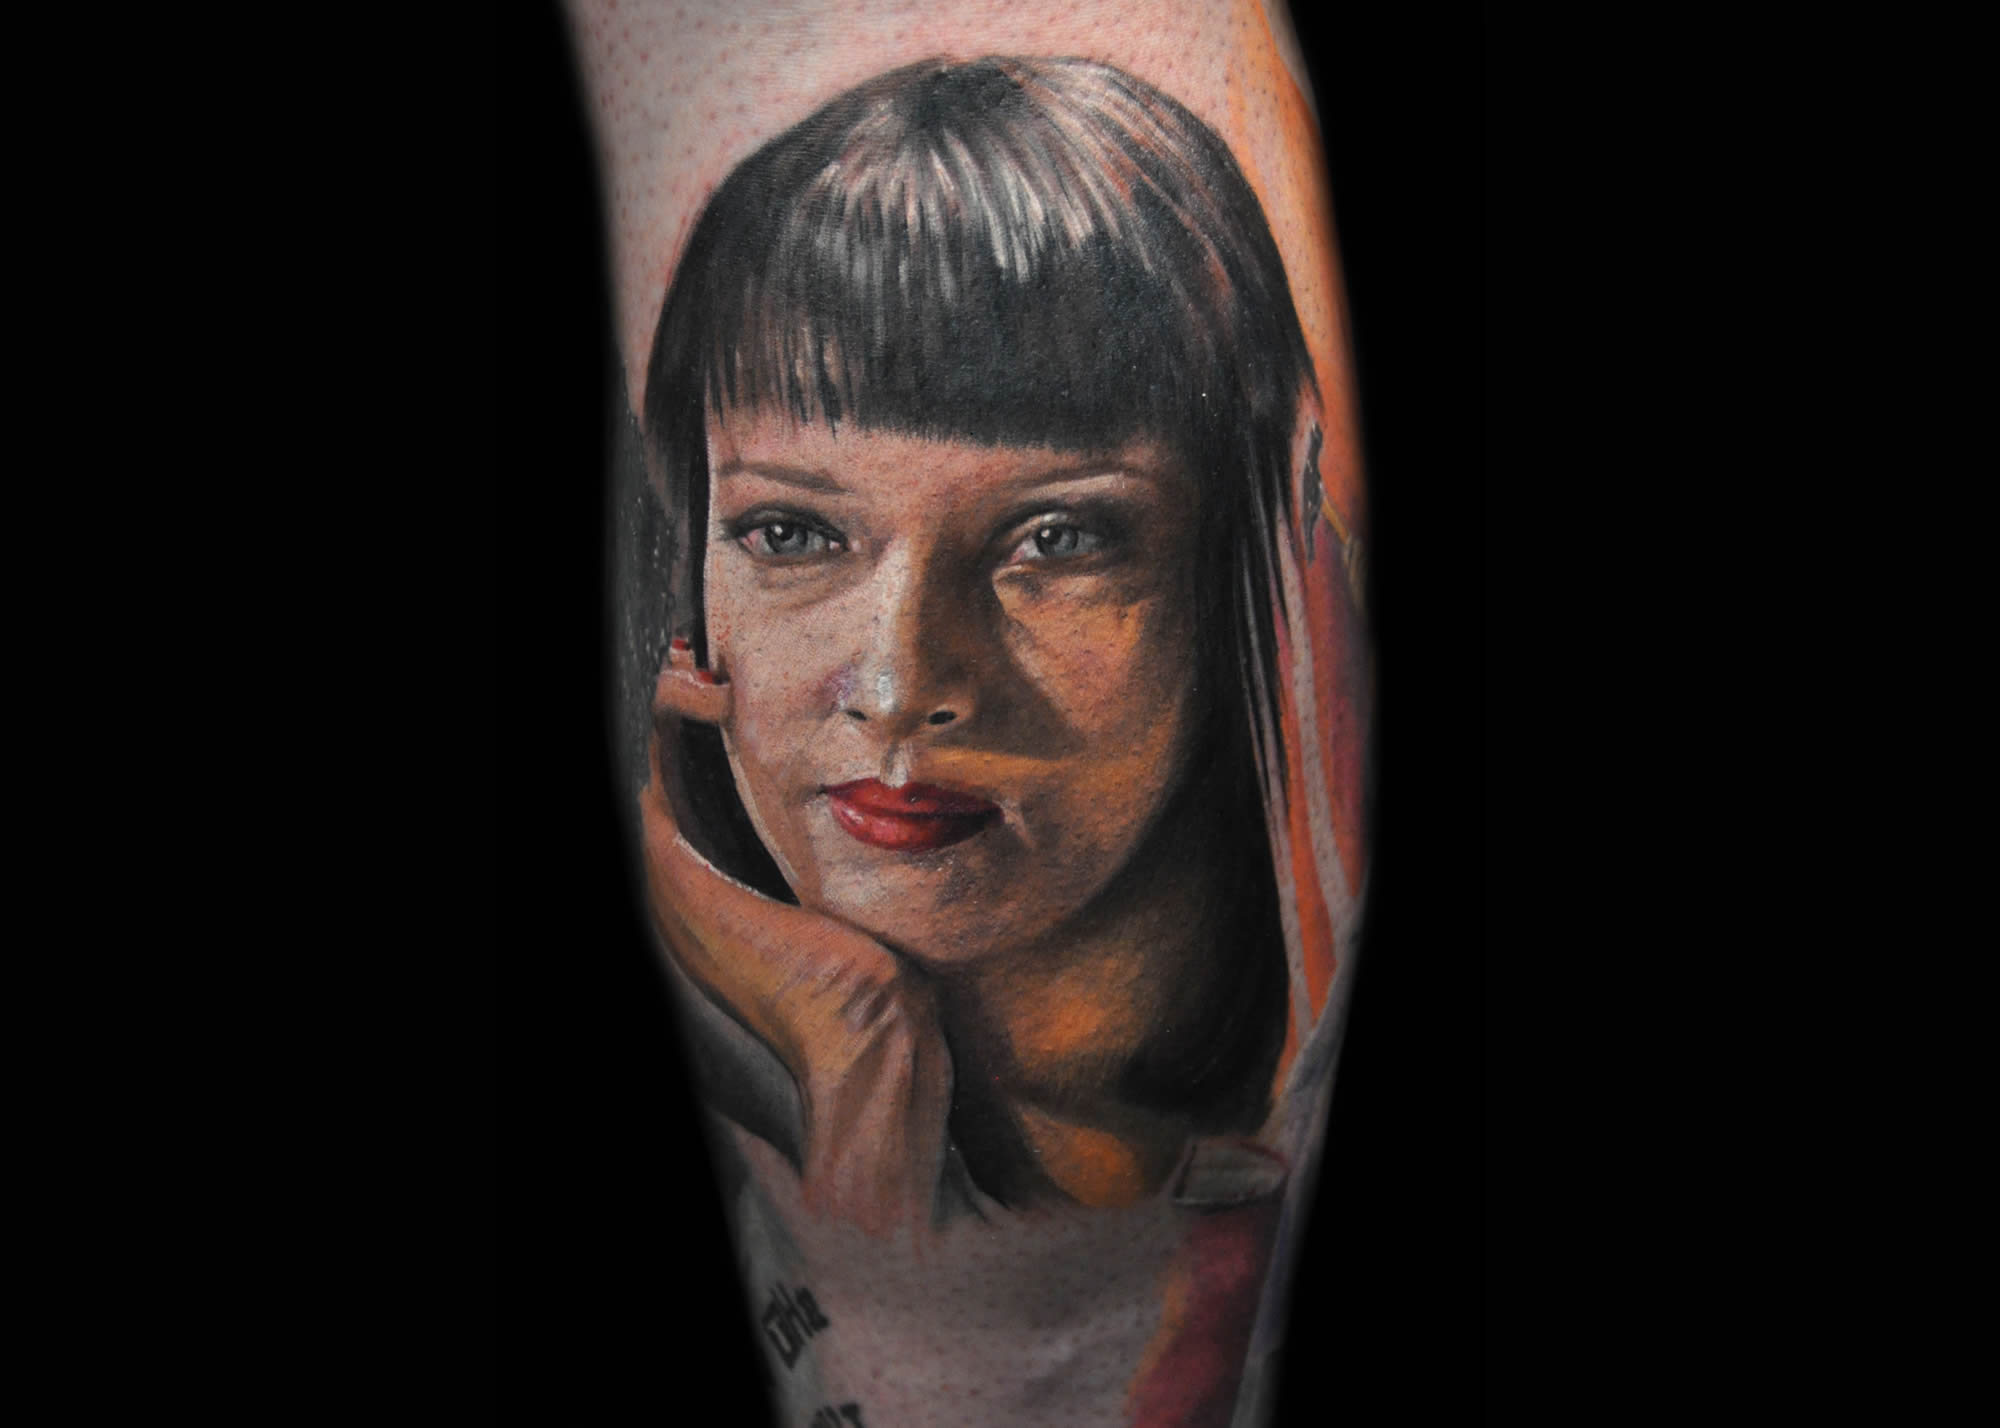 mia wallace in pulp fiction, tattoo